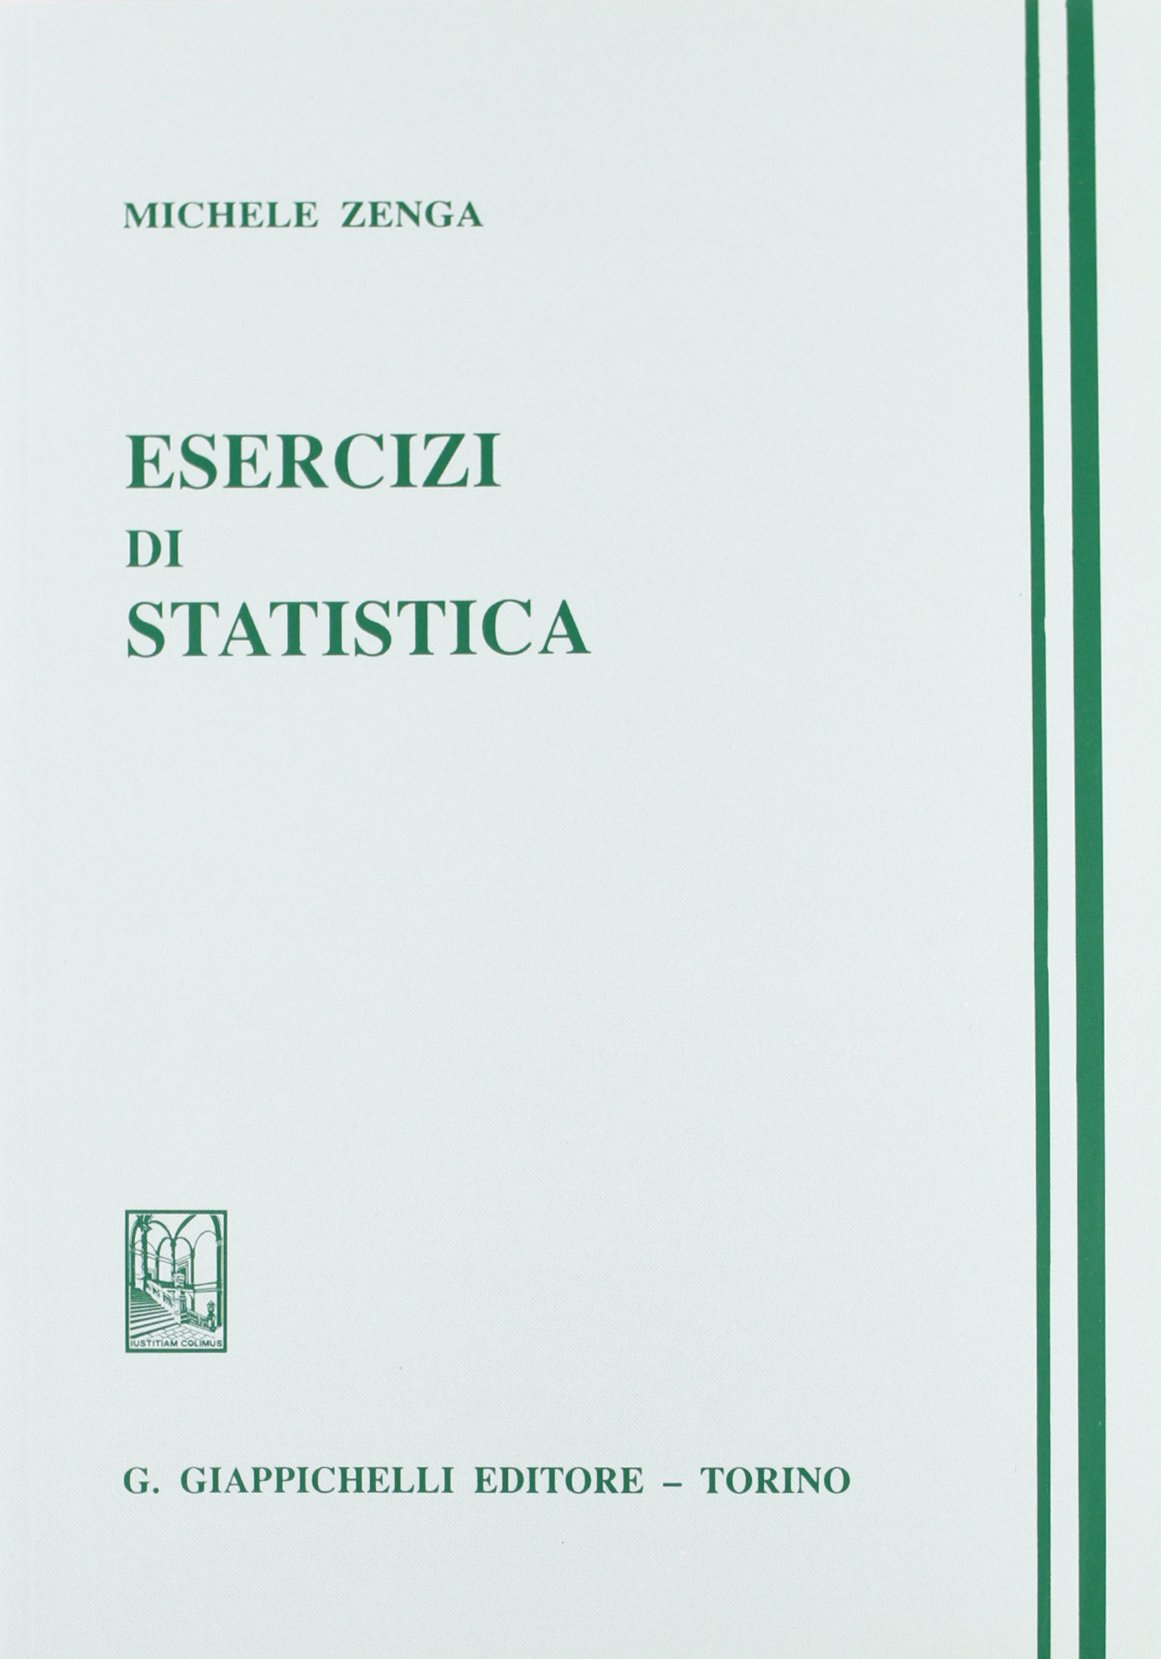 Download Esercizi Di Statistica 